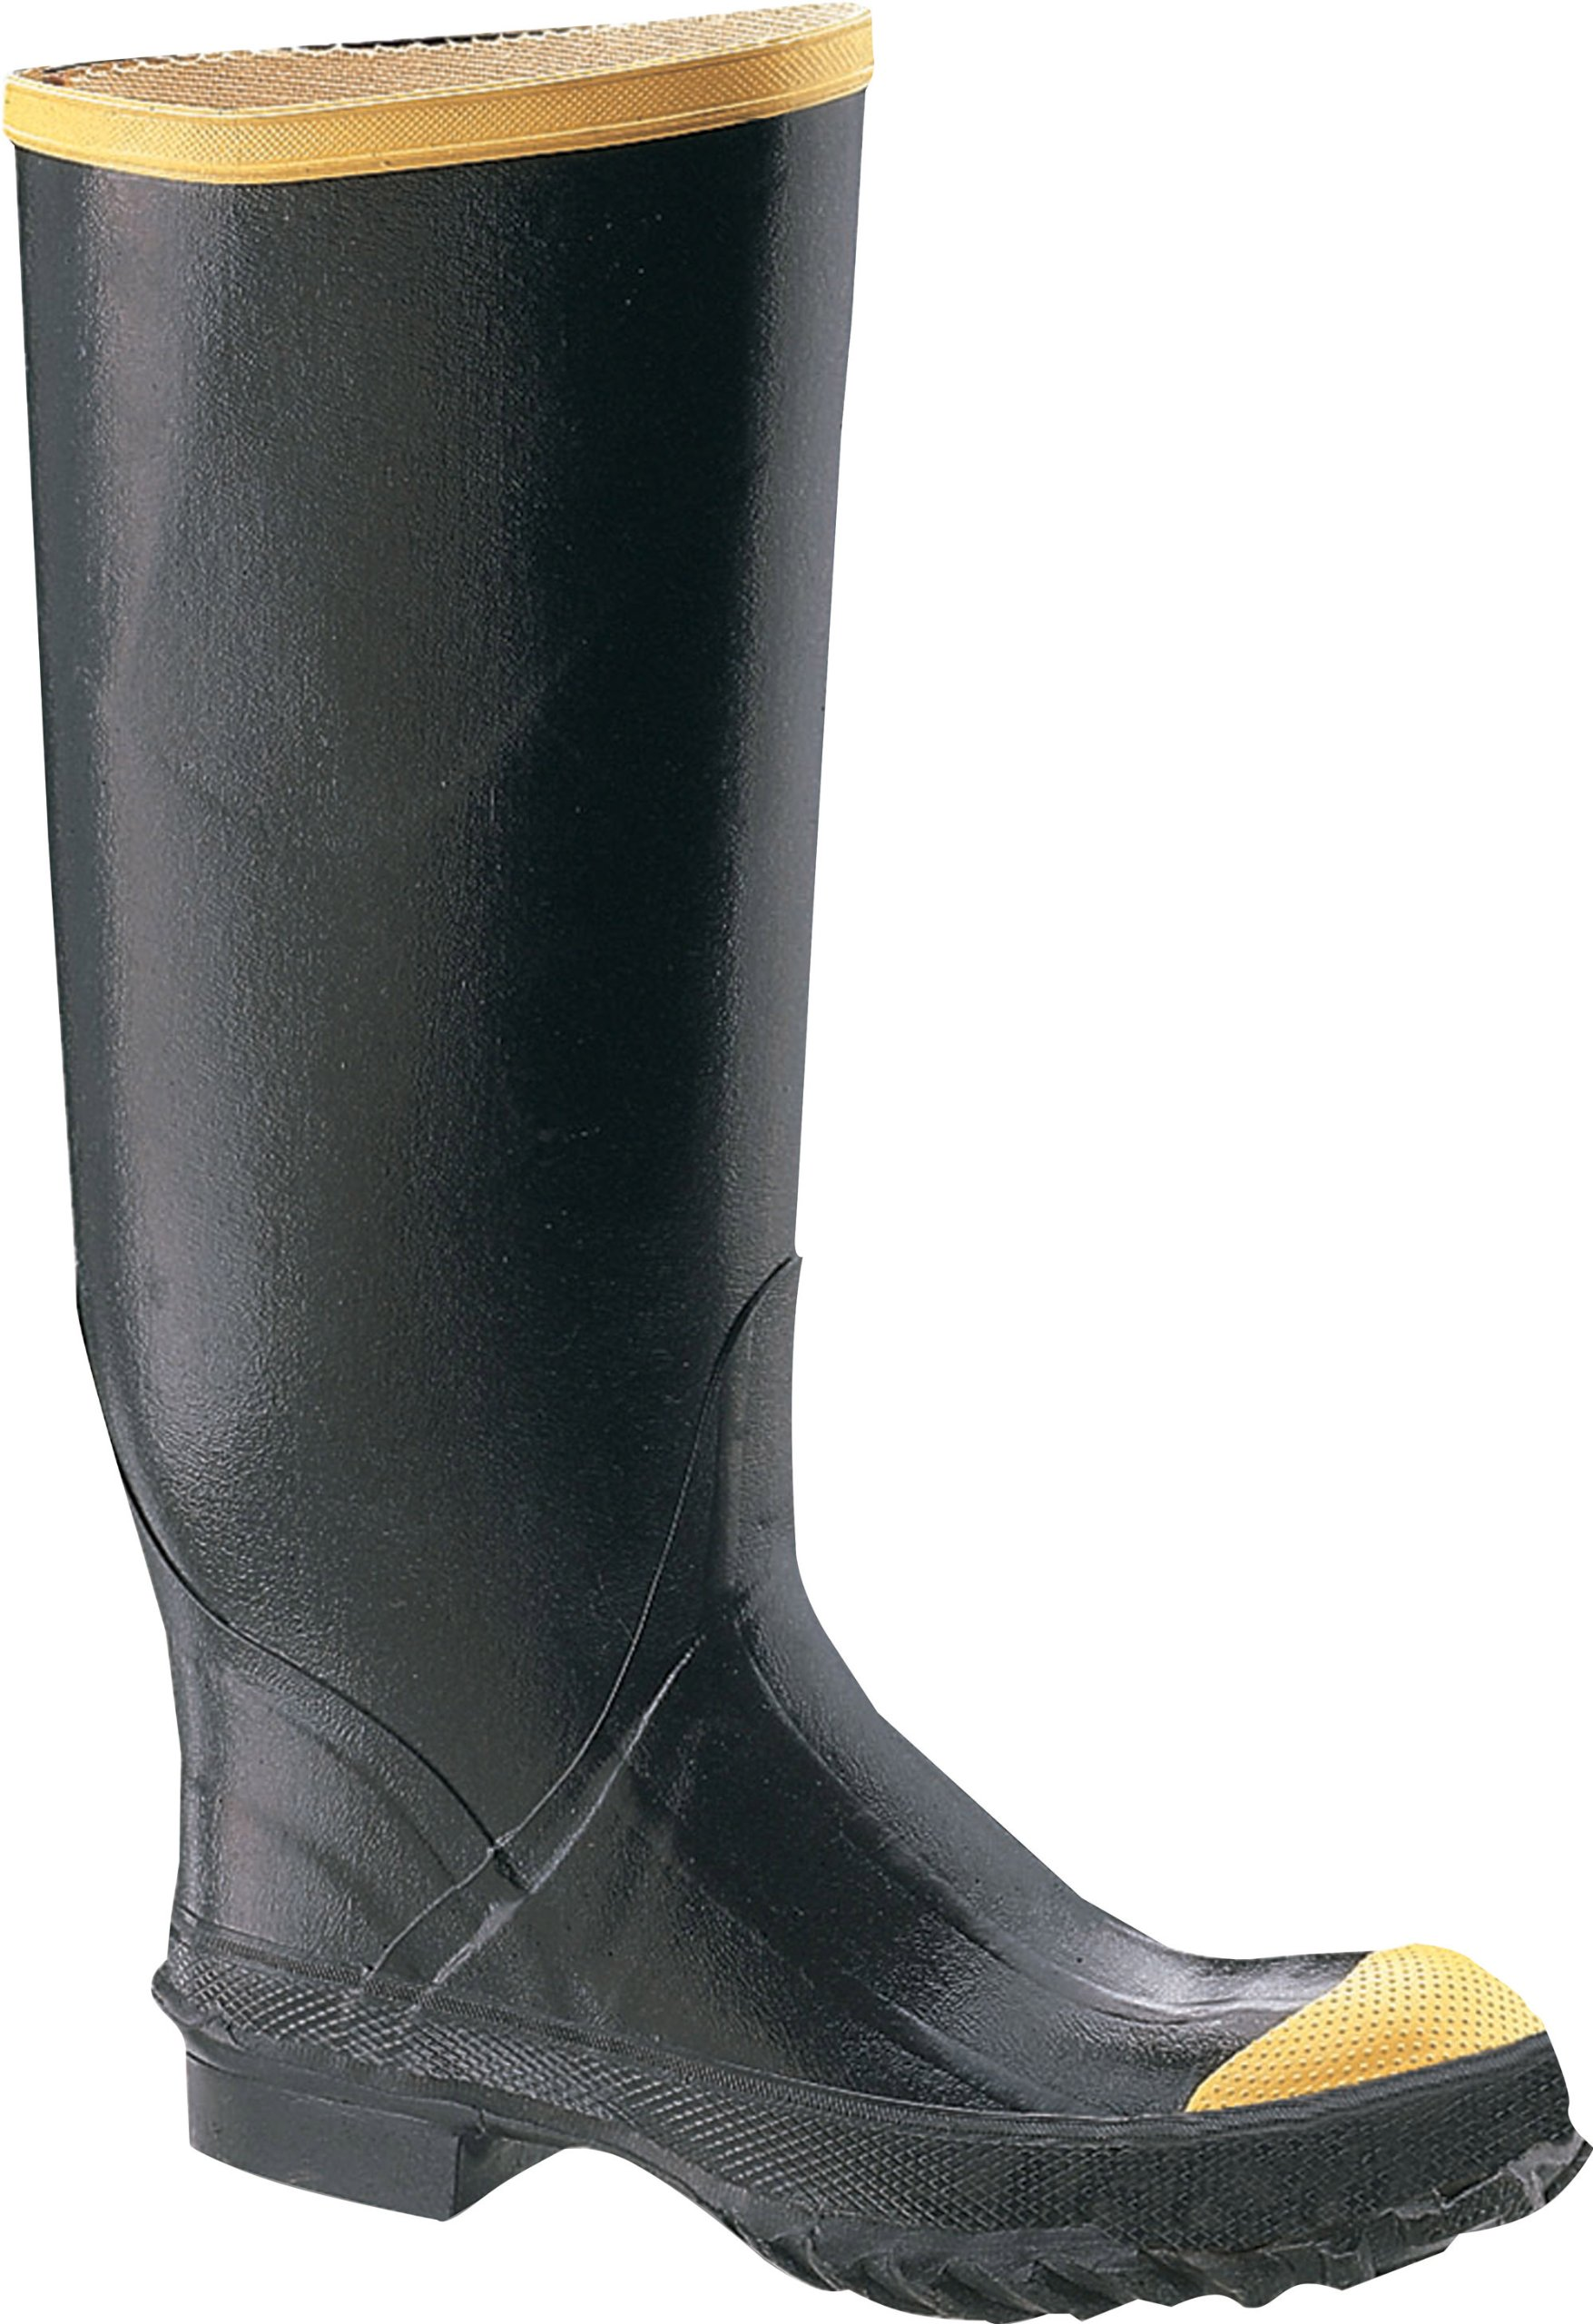 Honeywell Safety 2141-8 Ranger Safety Hi Boot for Men's, Size-8, Black by Honeywell